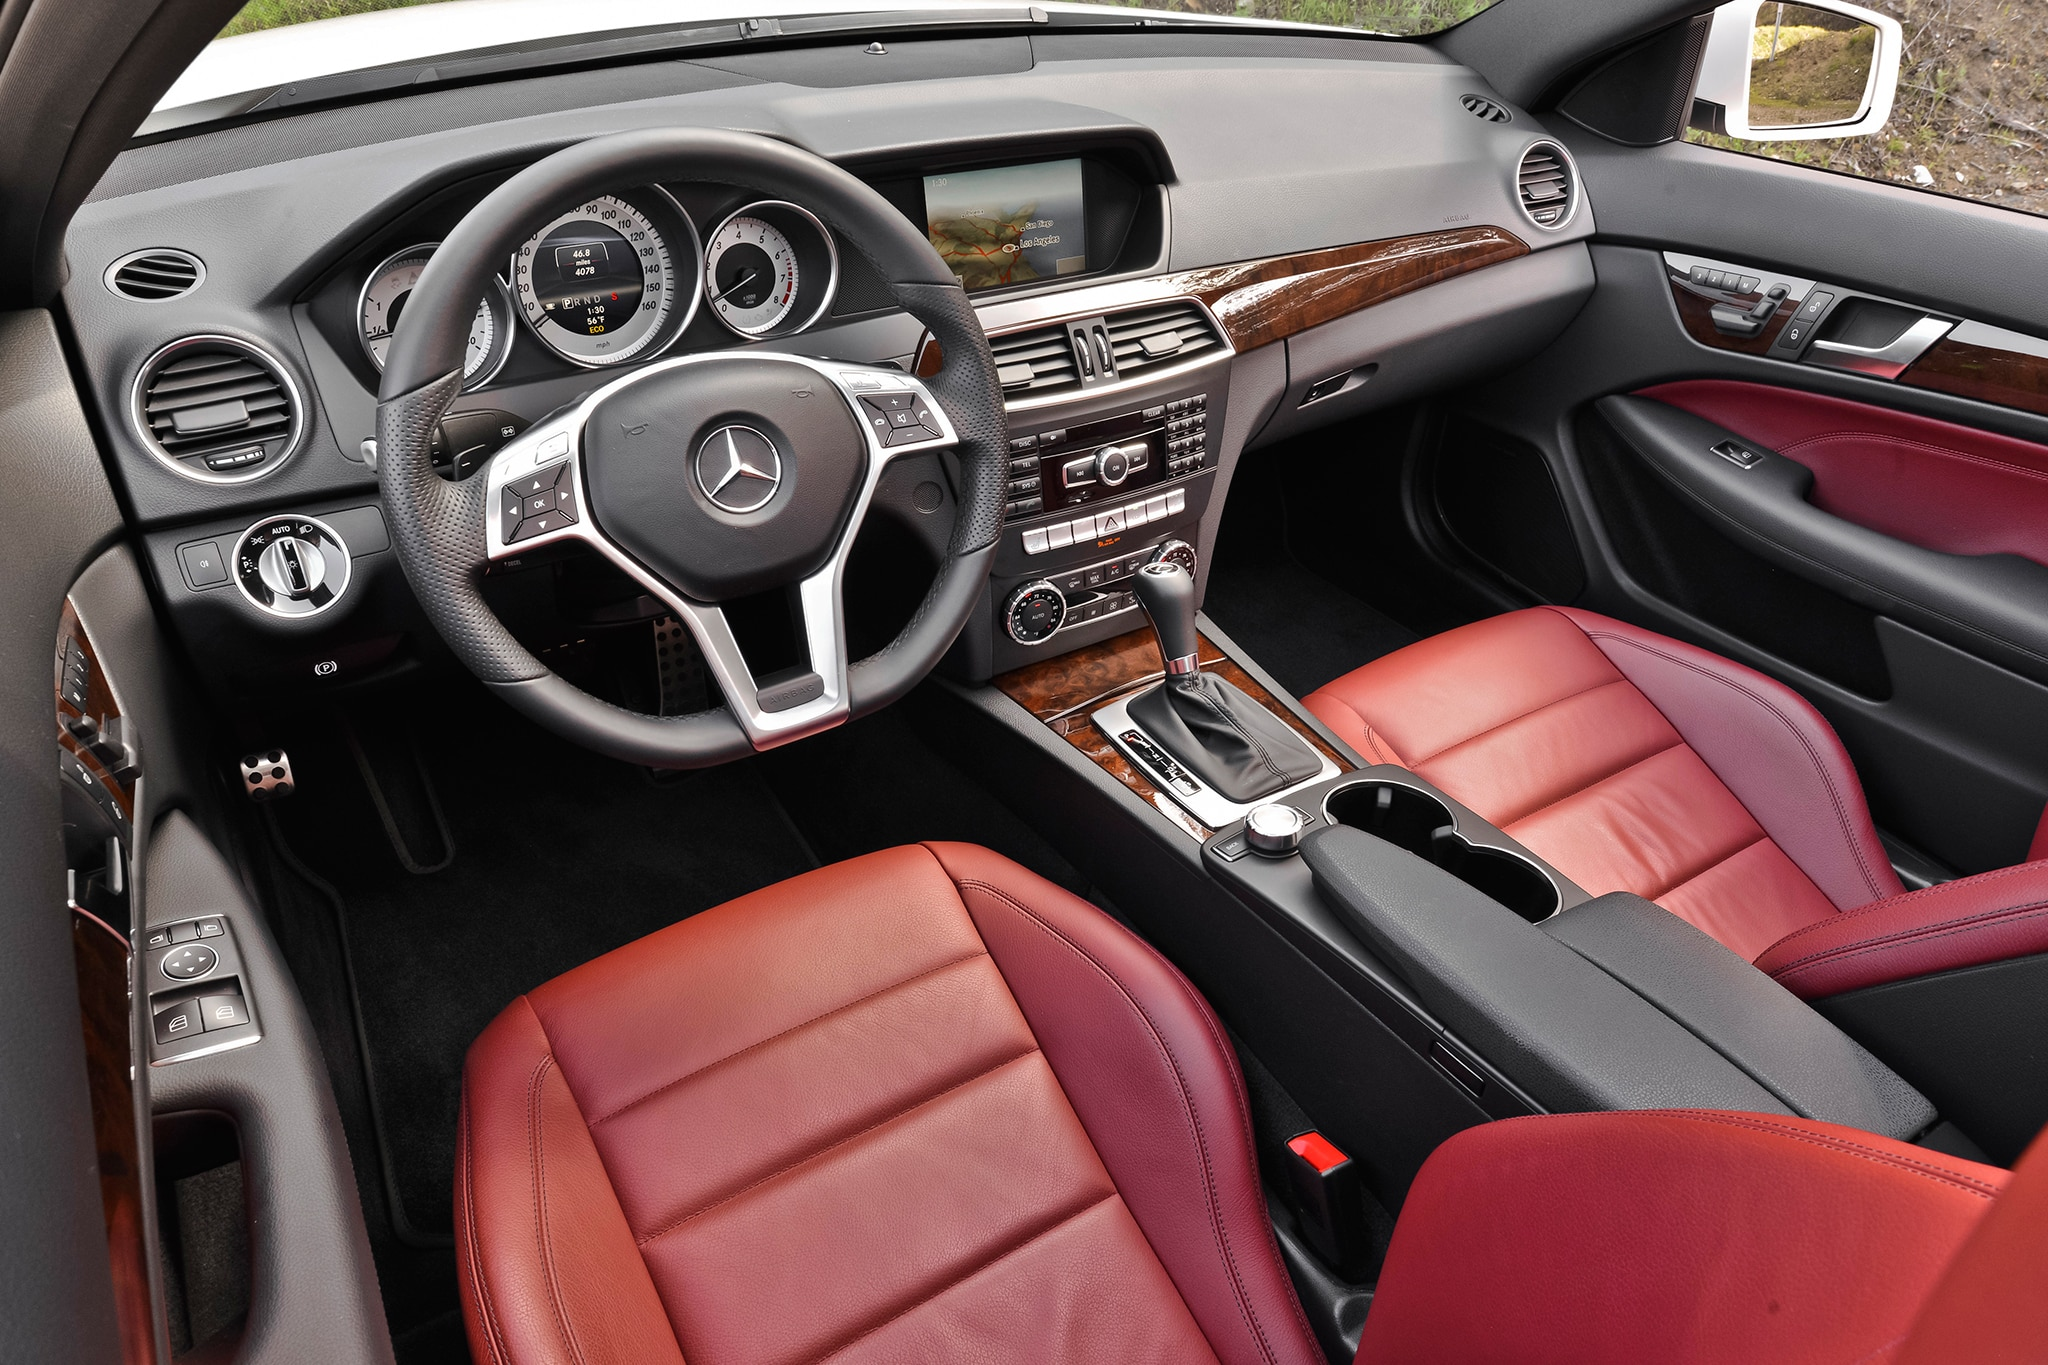 E Class Cabriolet furthermore 252423344619 additionally Modp 1205 2010 Mercedes Benz E350 Sedan additionally Mercedes Benz Cars Hd Wallpapers as well Mercedes Benz E Klasse Coupe Facelift 2013 04. on 2013 mercedes benz e350 coupe